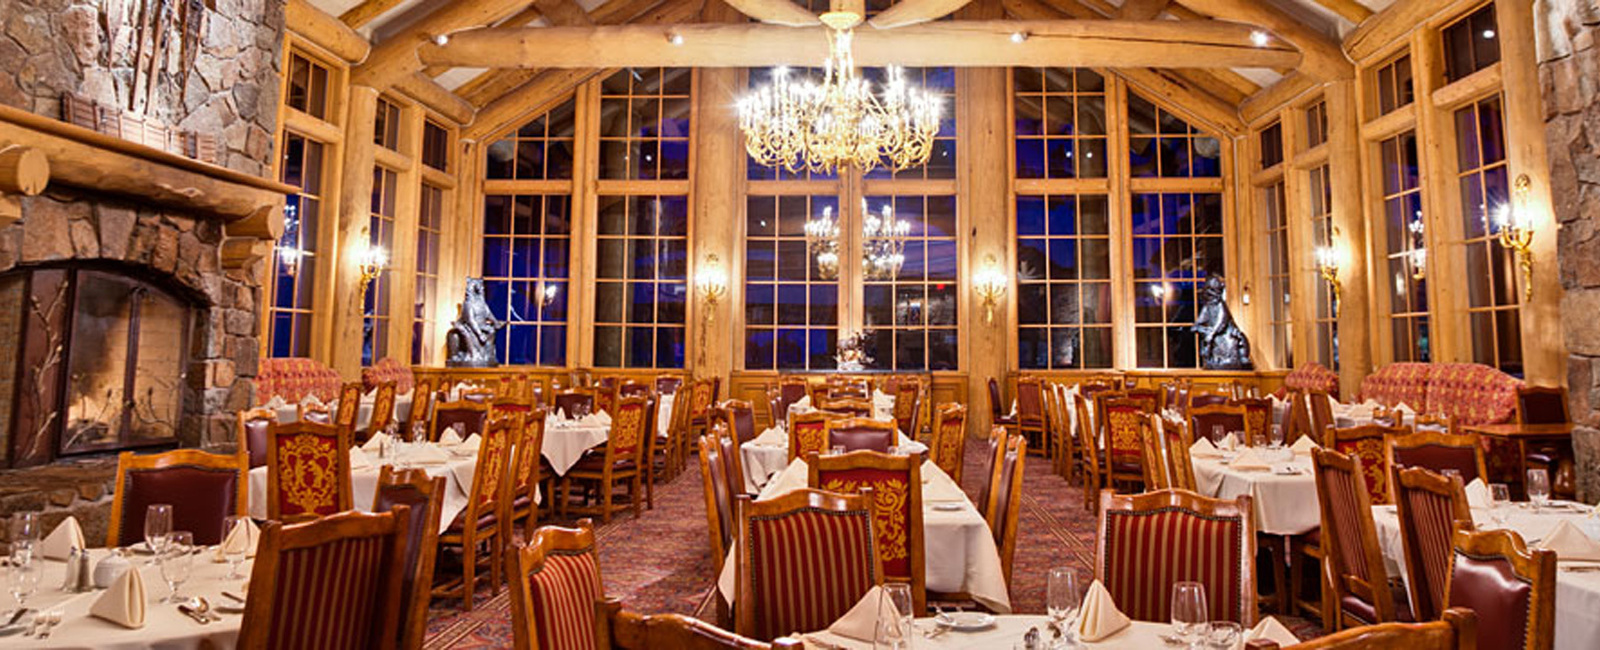 Snowbasin Banquets & Events